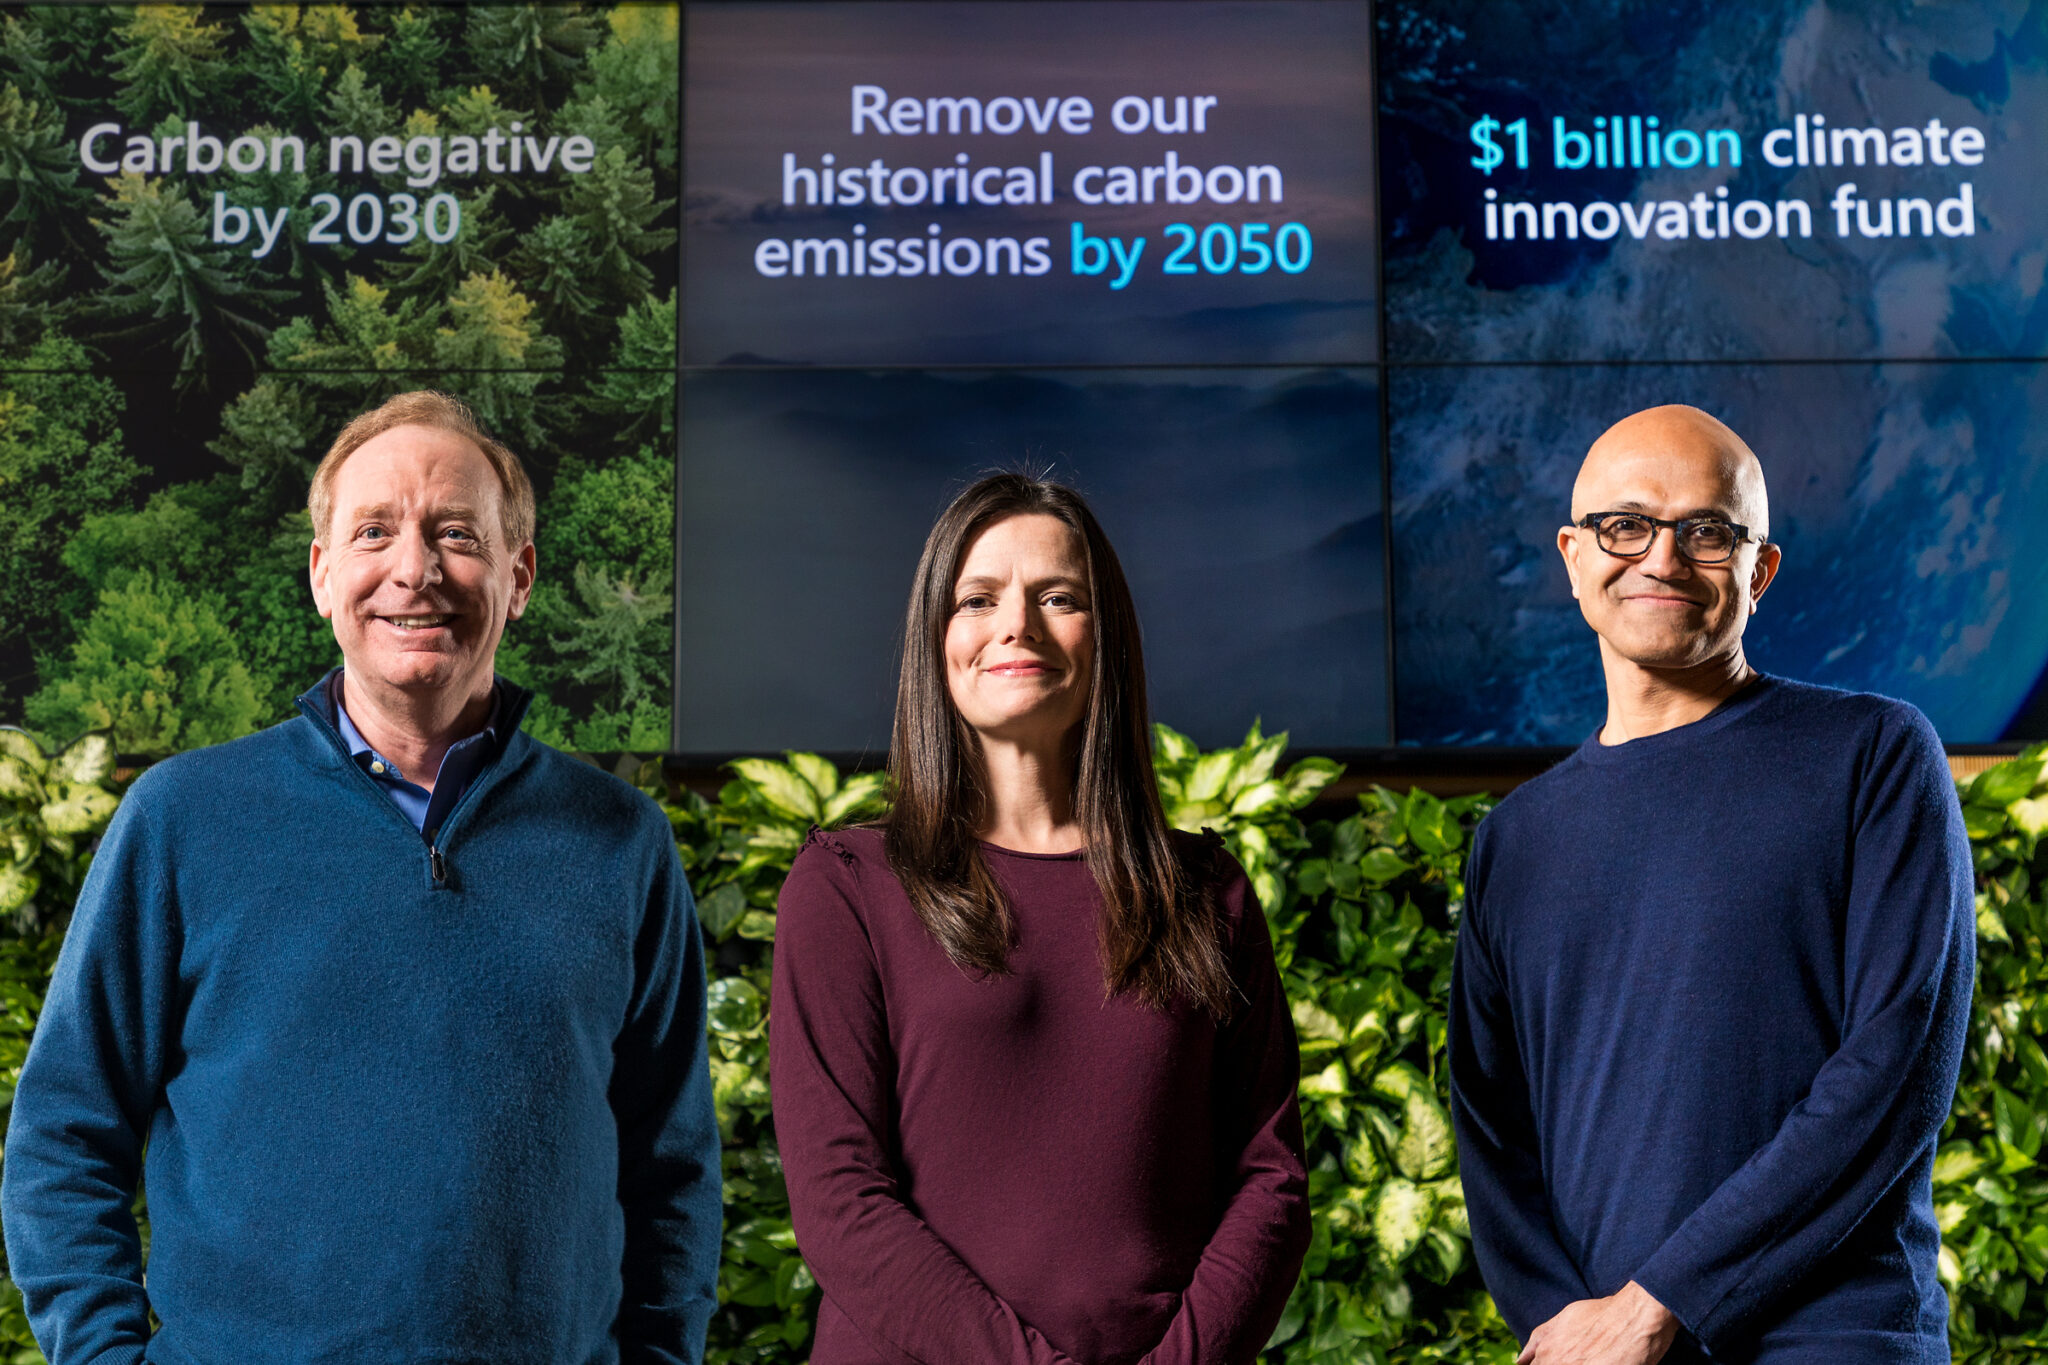 Microsoft president says support of SEC climate disclosure rules goes beyond its own business